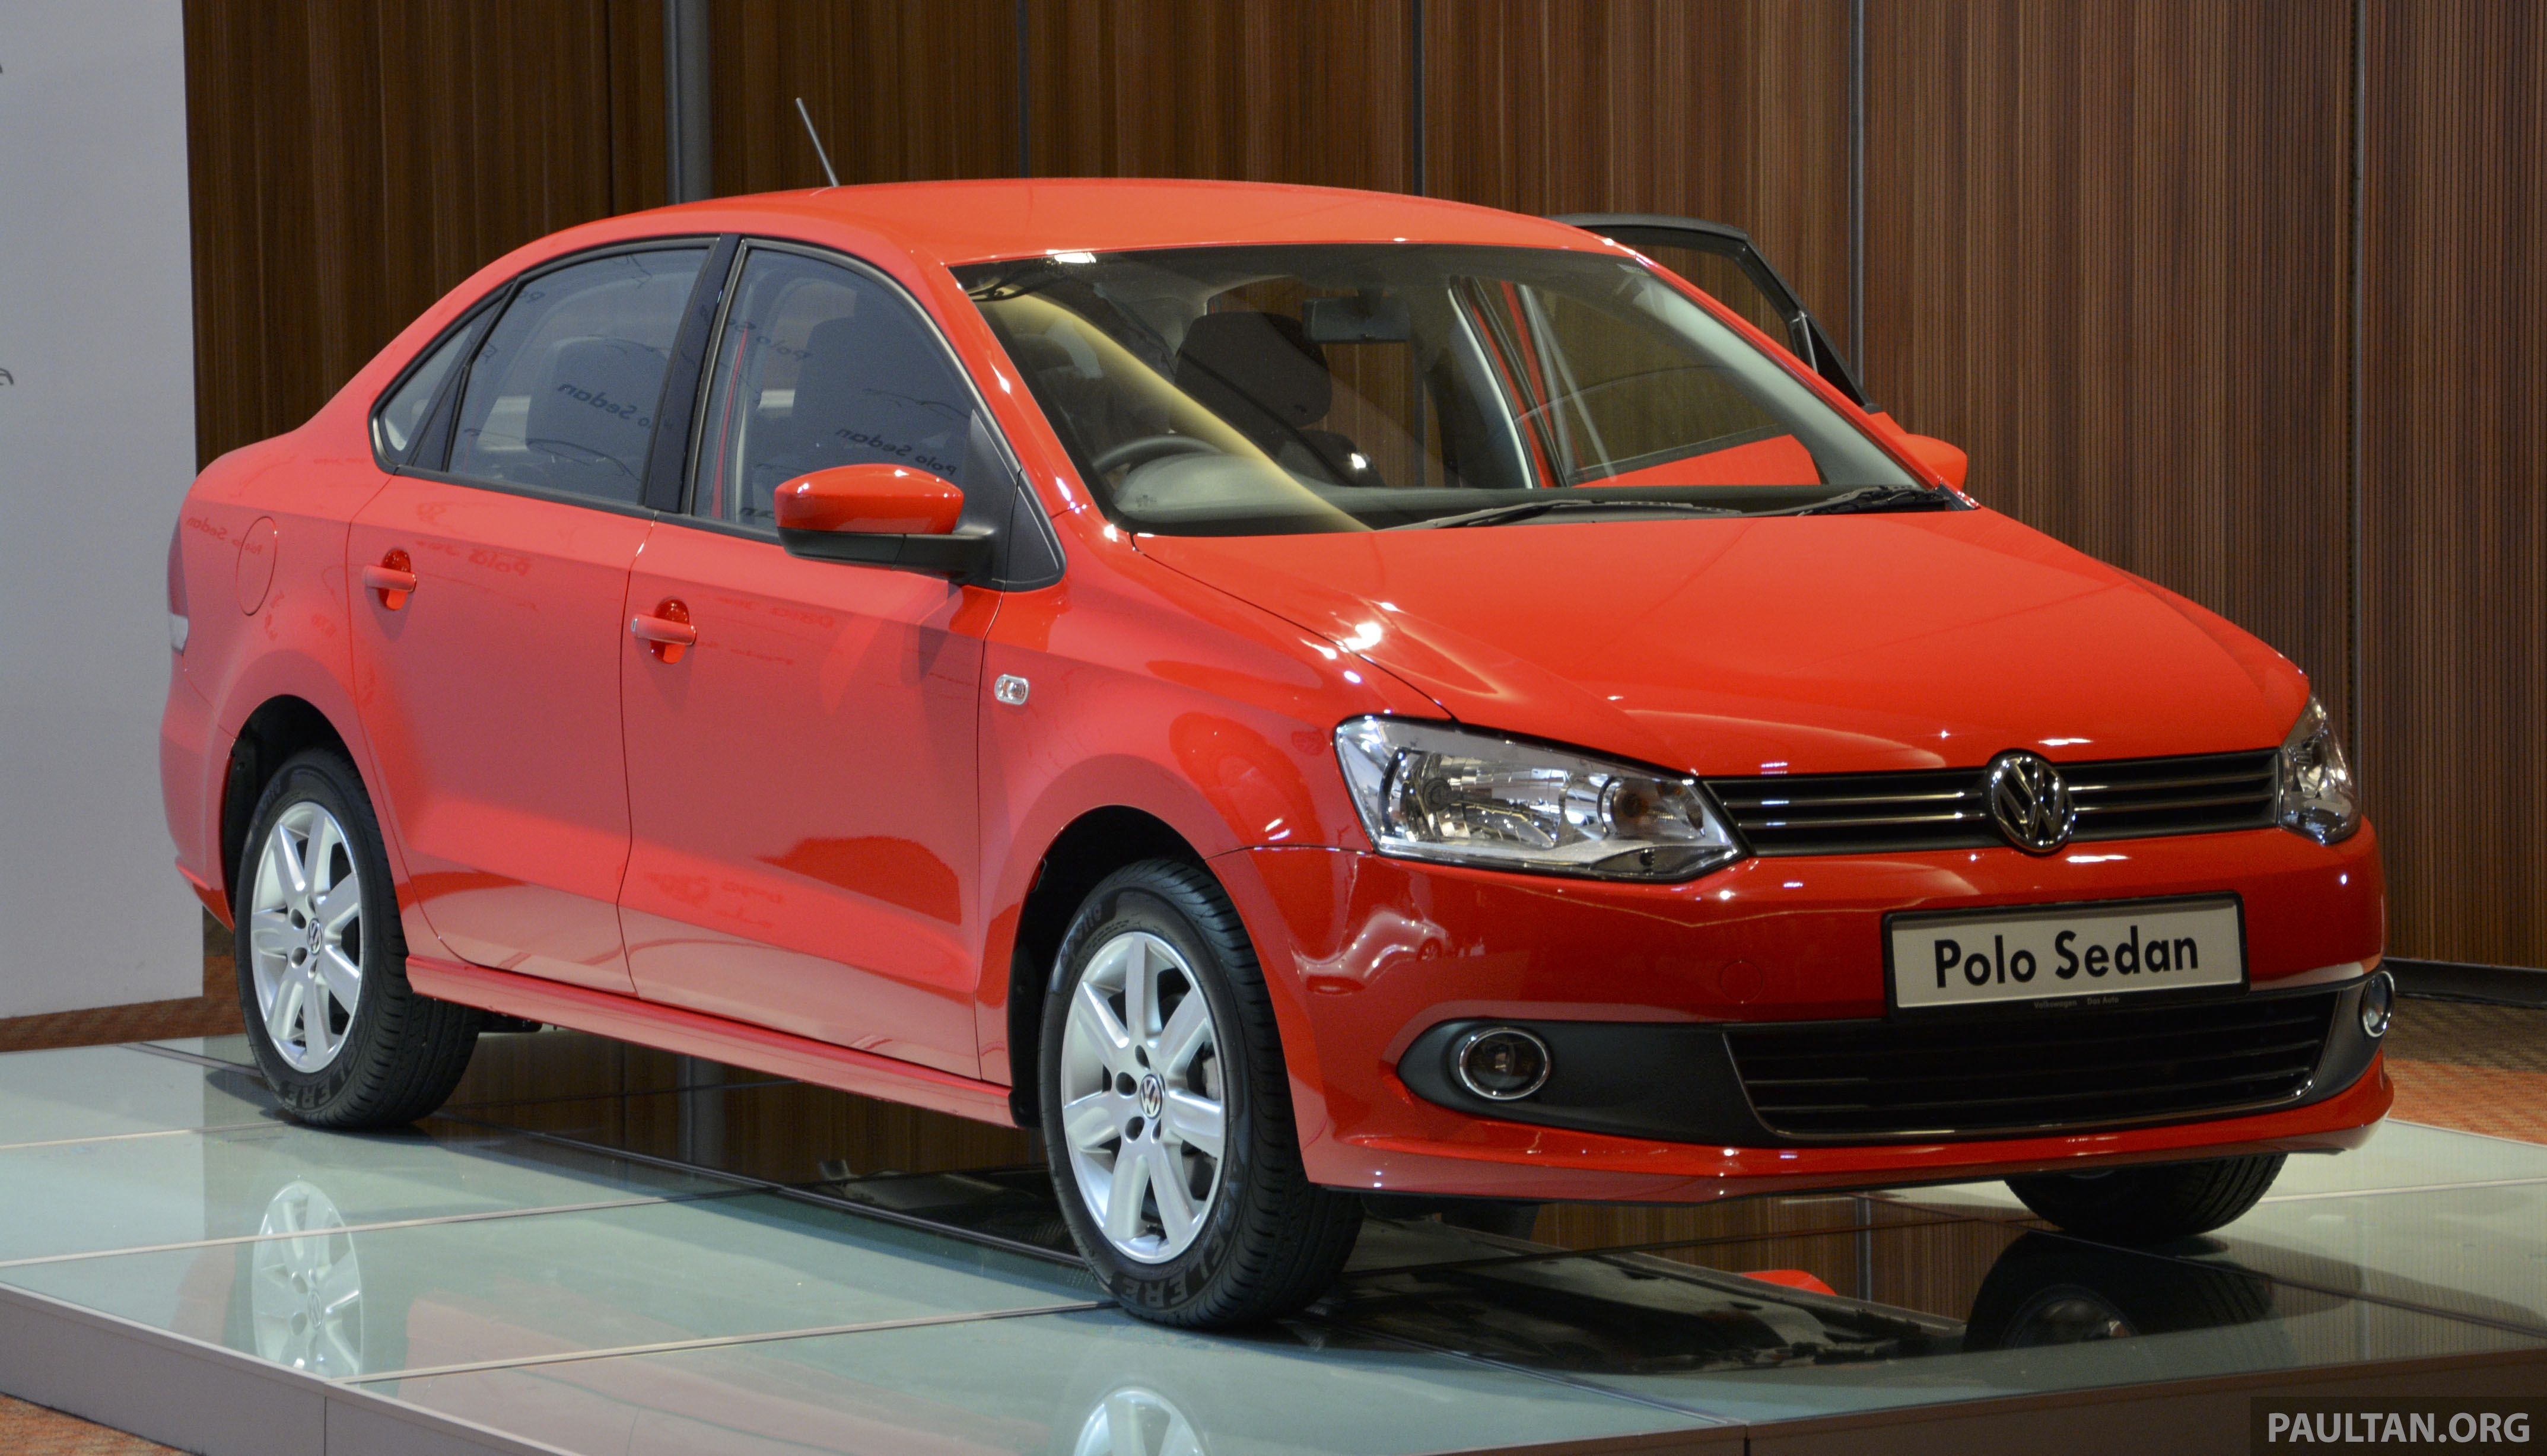 2014 volkswagen polo sedan ckd launched rm86k paul tan image 207428. Black Bedroom Furniture Sets. Home Design Ideas